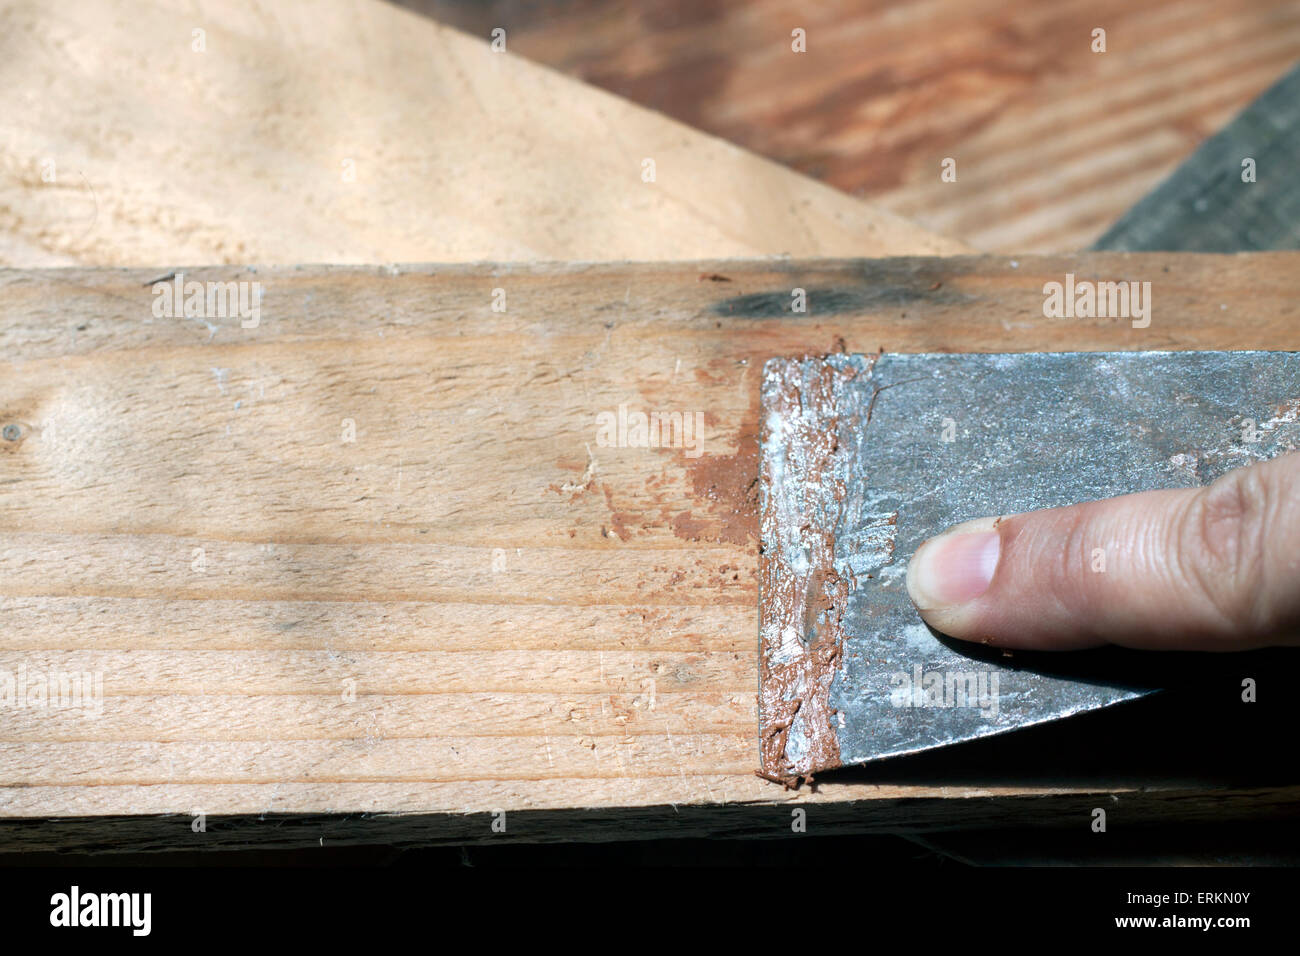 a woman using a putty knife so as to refurbish some pieces of wood - Stock Image